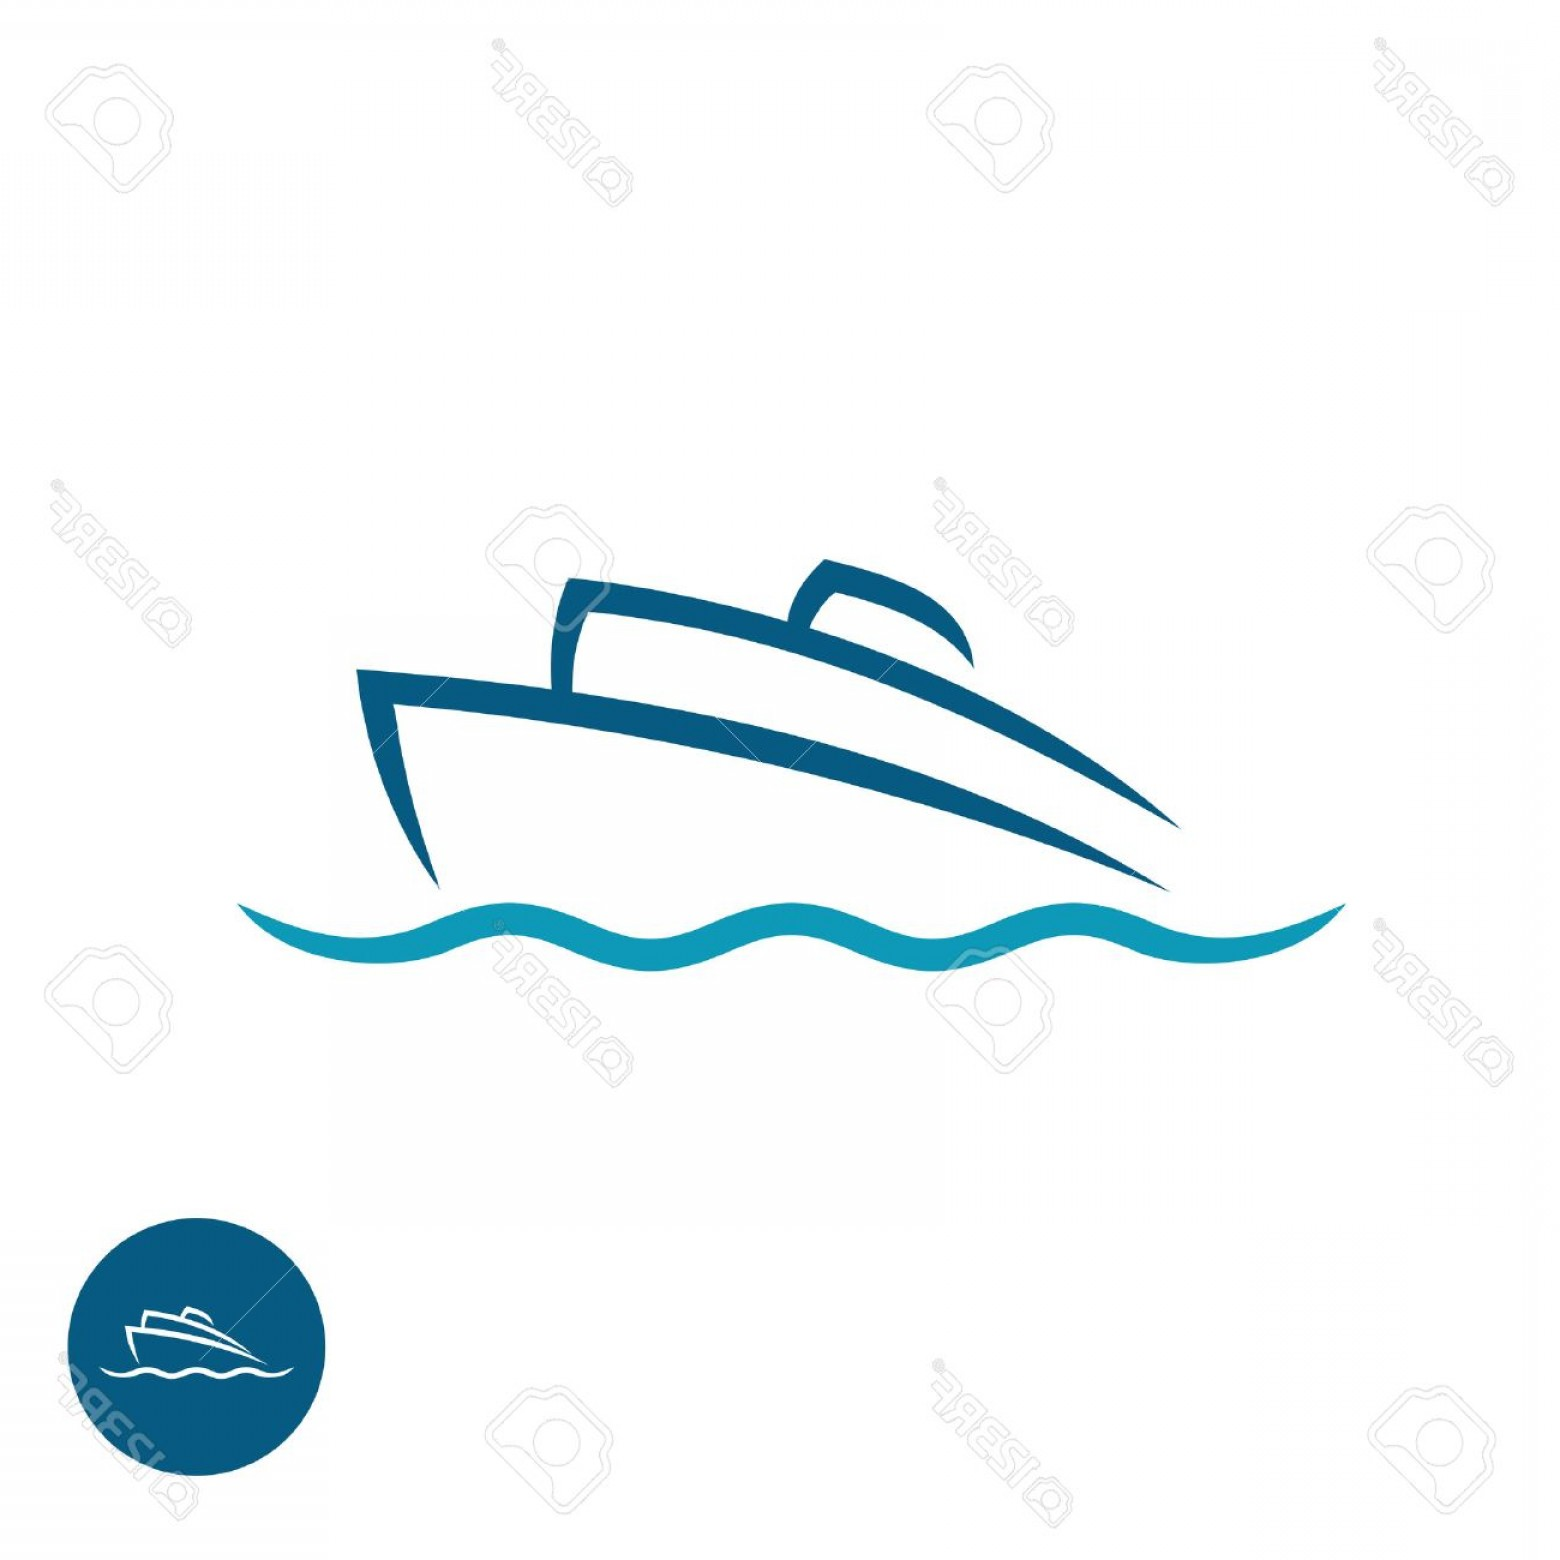 Waves With Cruise Ship Silhouette Vector: Photostock Vector Ocean Cruise Liner Ship Silhouette Simple Linear Logo